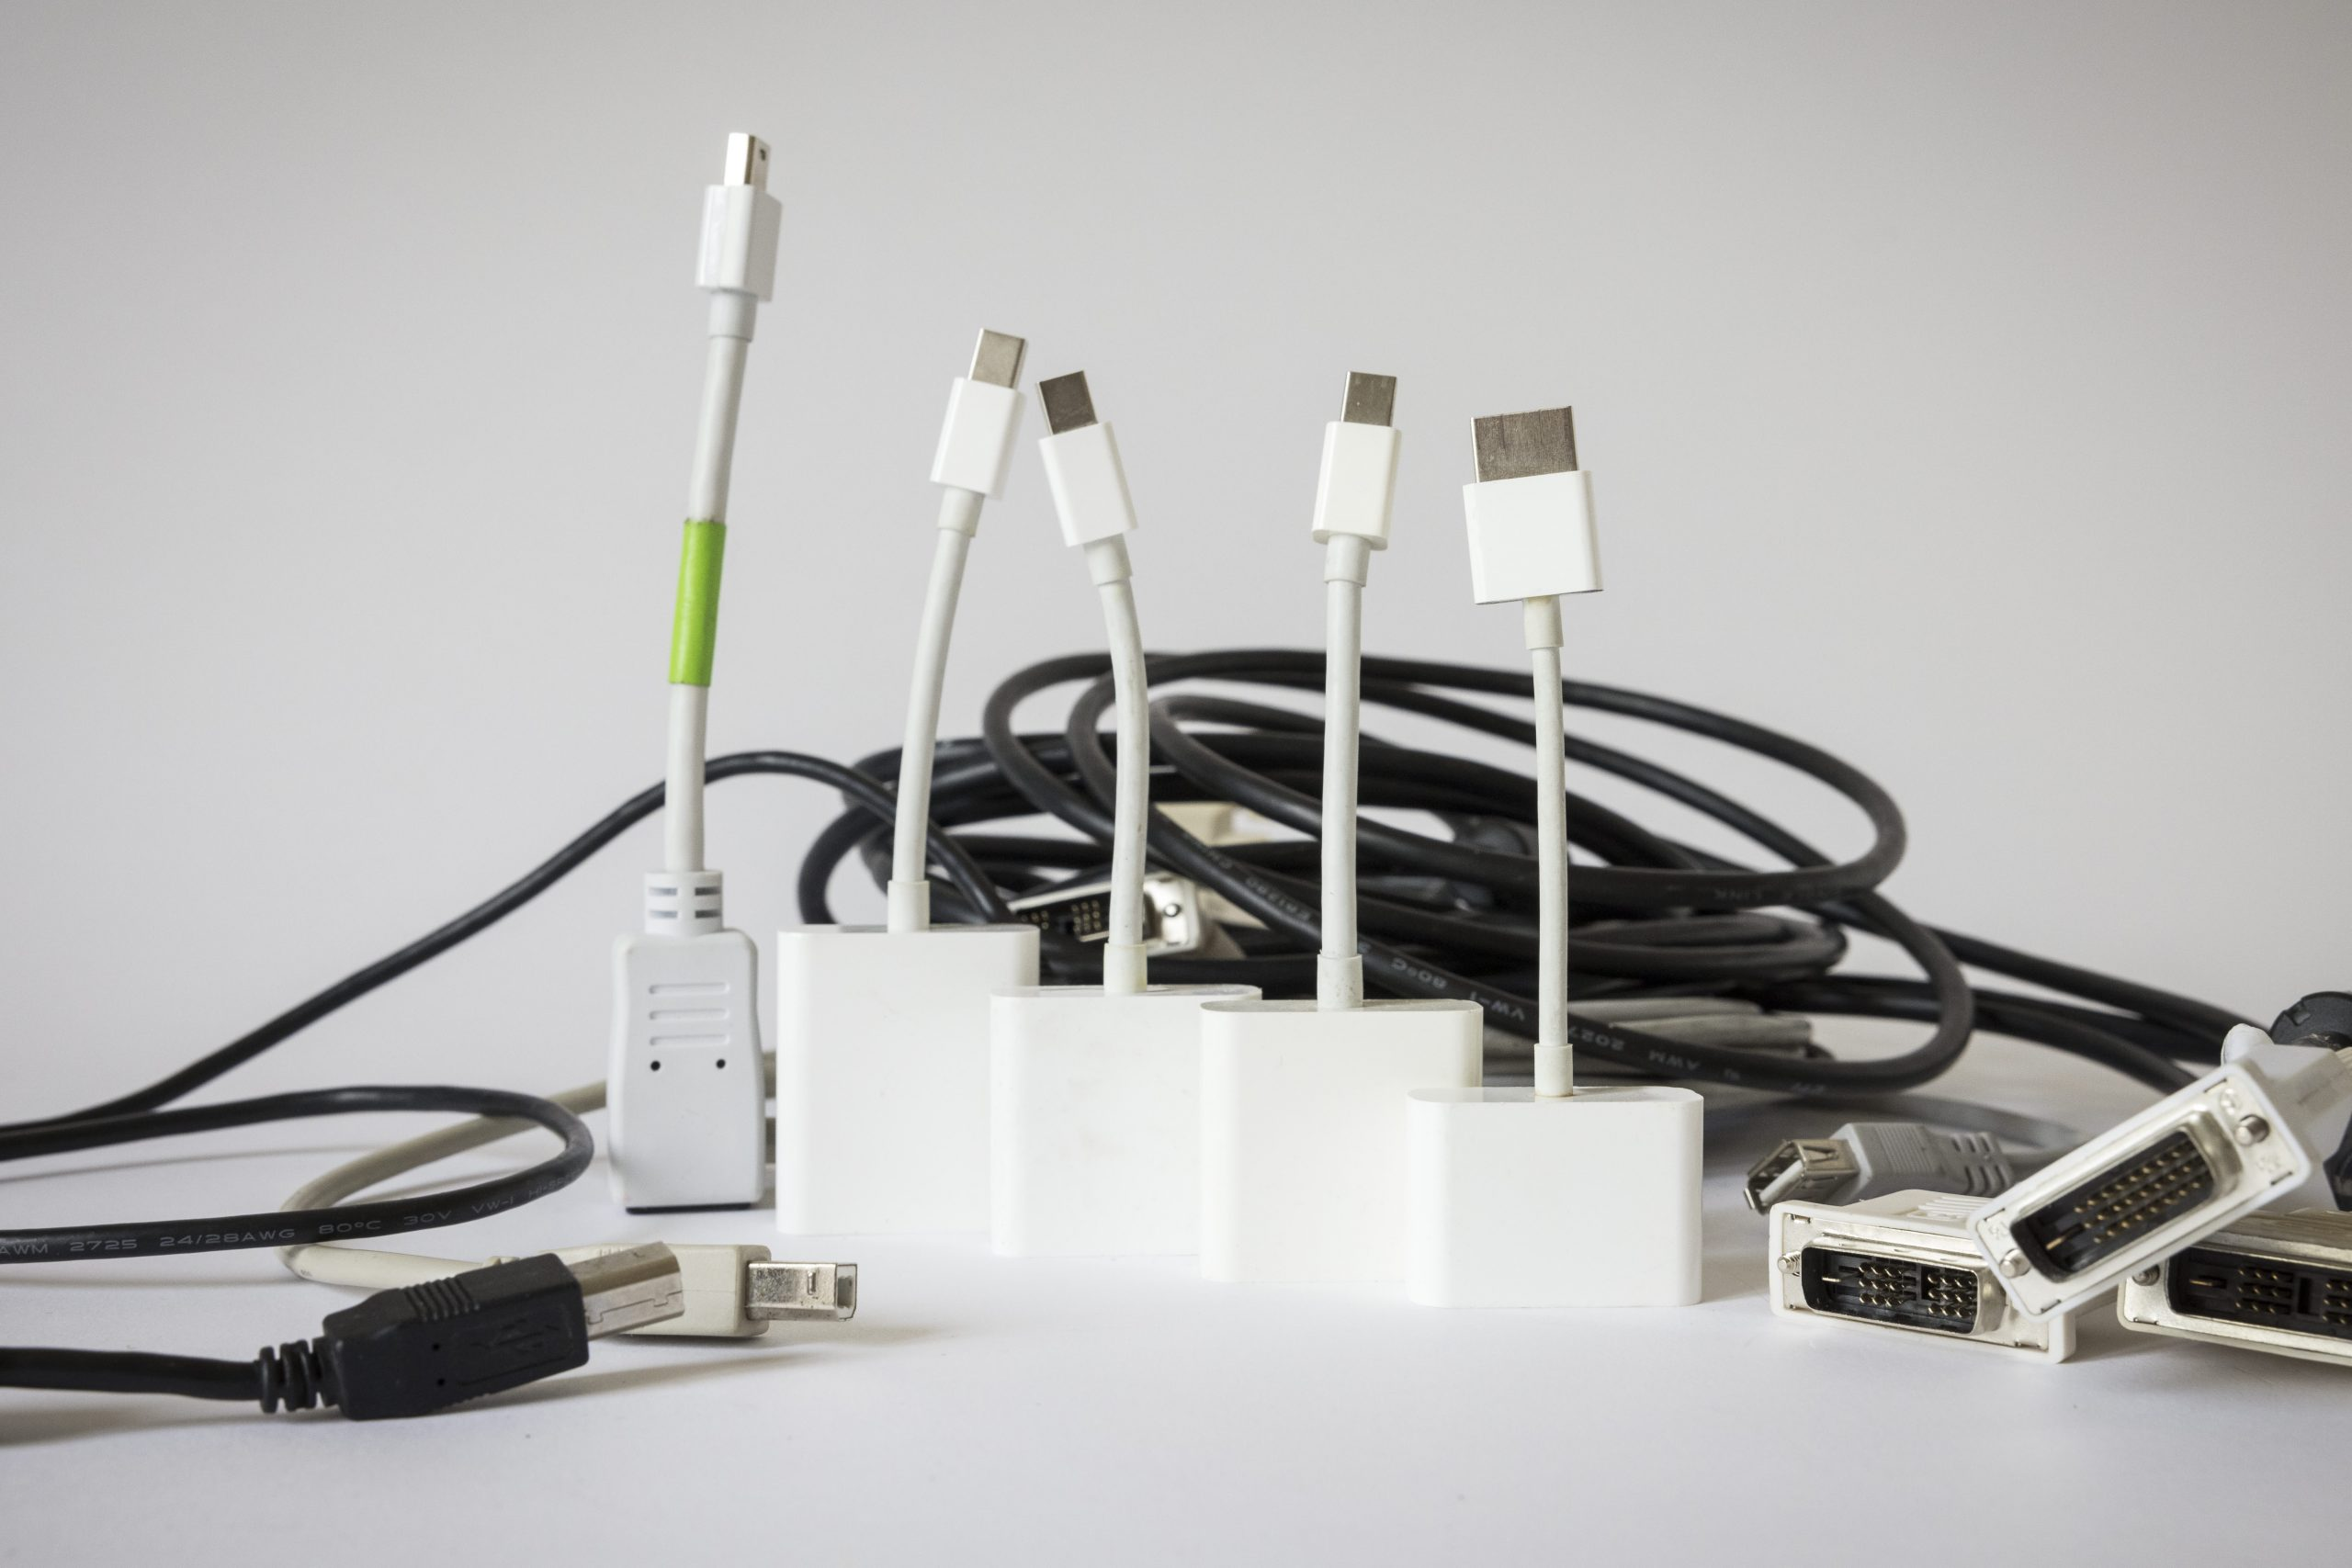 How Apple turned dongles into a big business